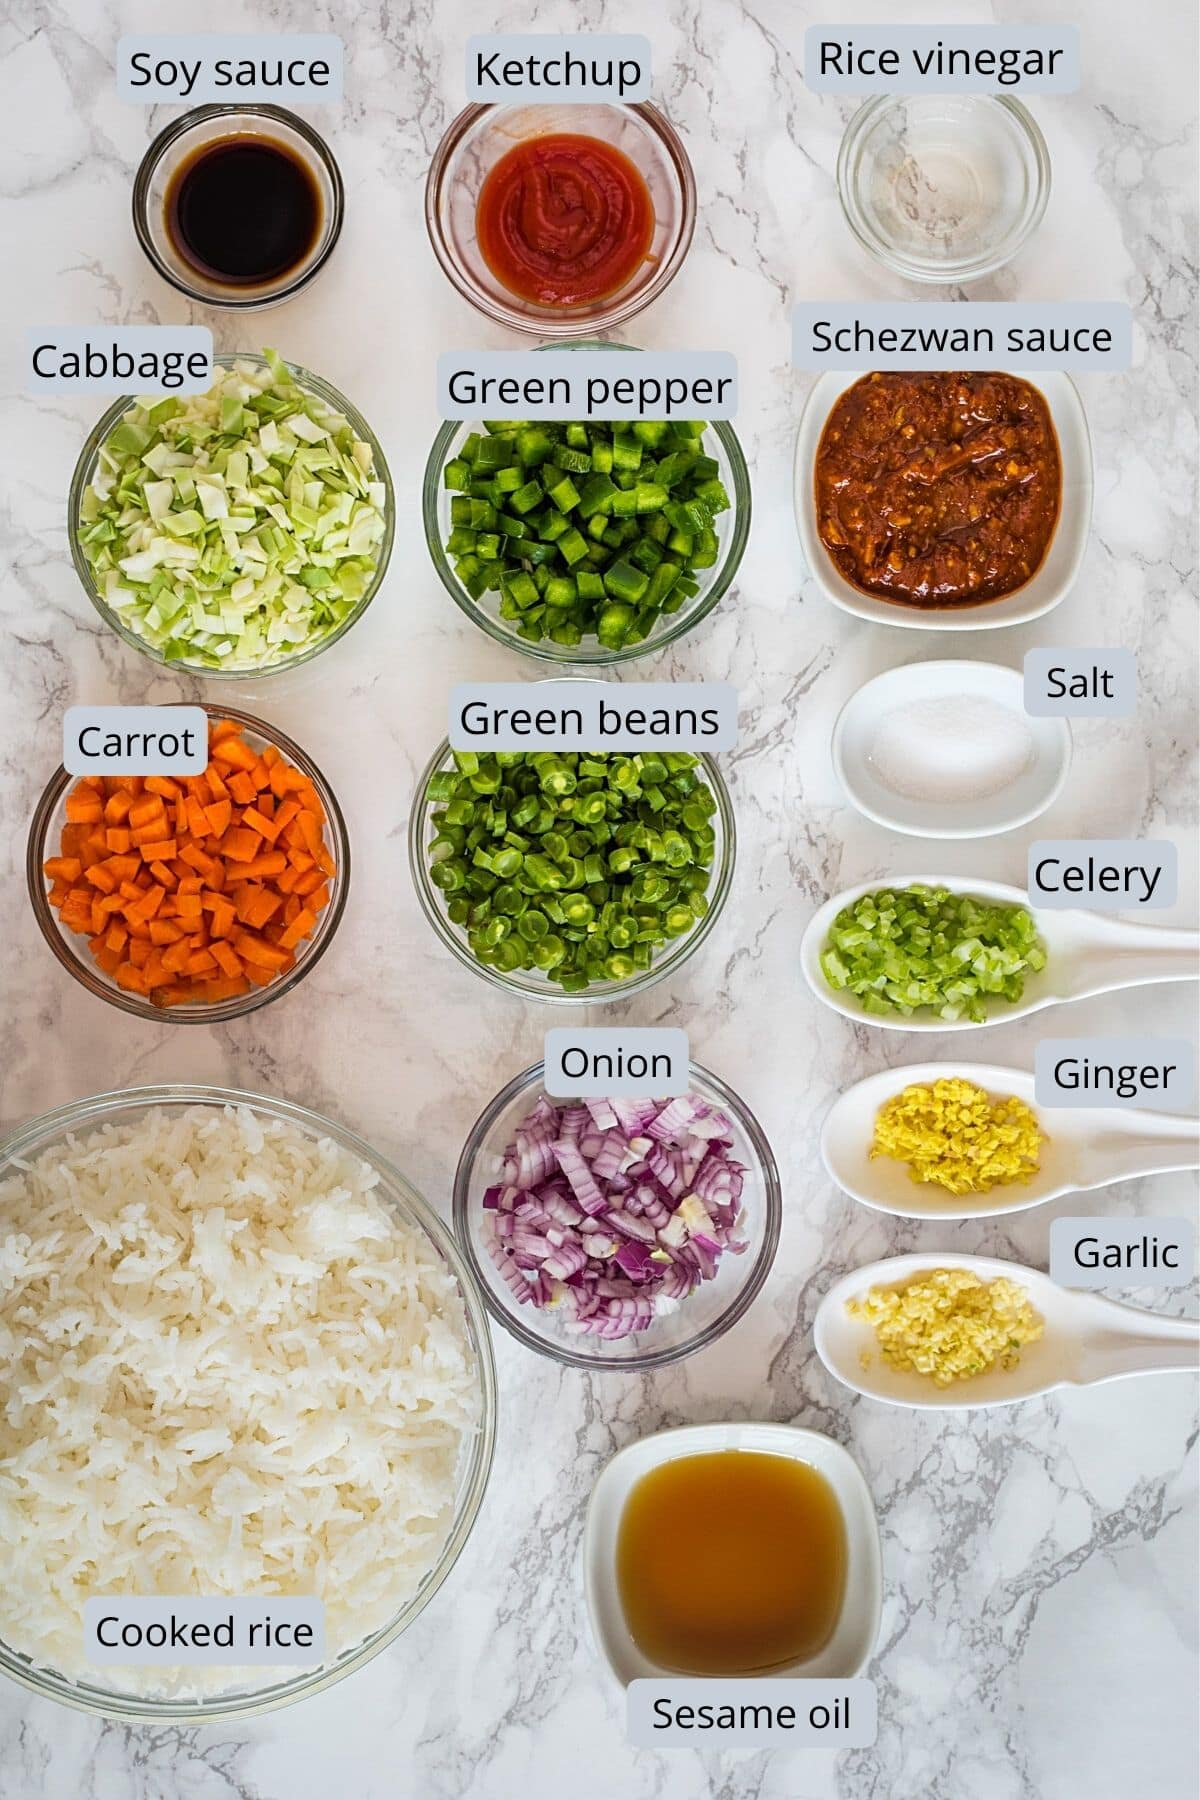 ingredients used in schezwan fried rice includes rice, veggies, oil, salt and chinese sauces.